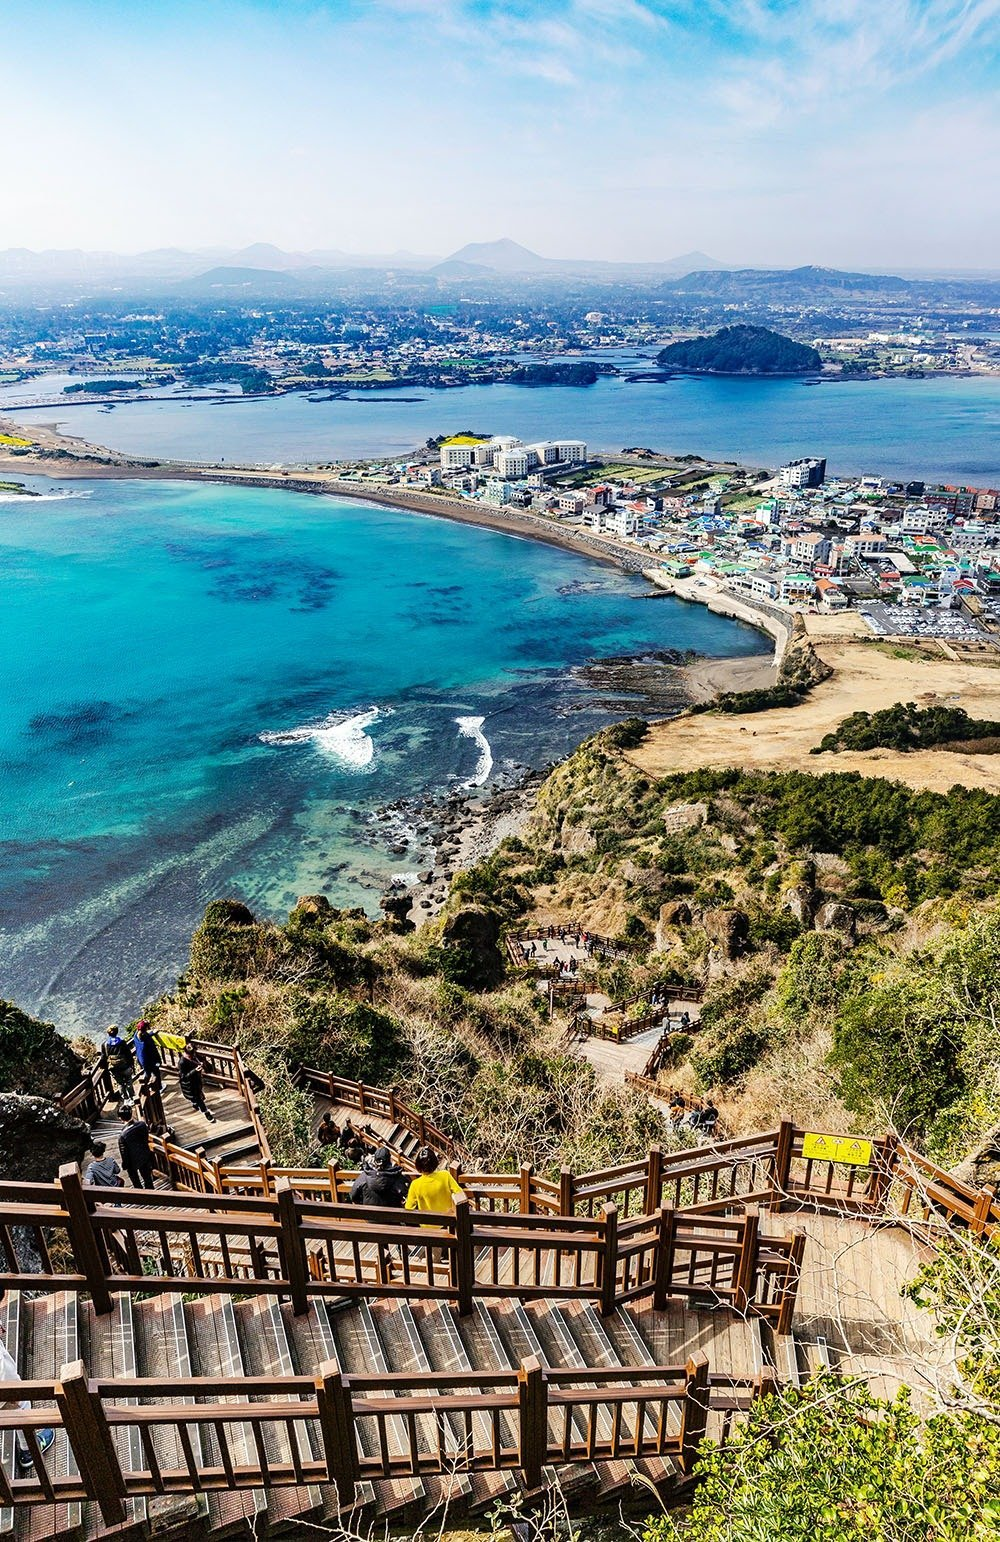 Views like this is what a holiday in Jeju is all about. From beautiful beaches to floral fields to stunning peaks, there's a lot to see and do in South Korea's favorite holiday island. Plan your trip quick and easy – here's where to stay in Jeju.